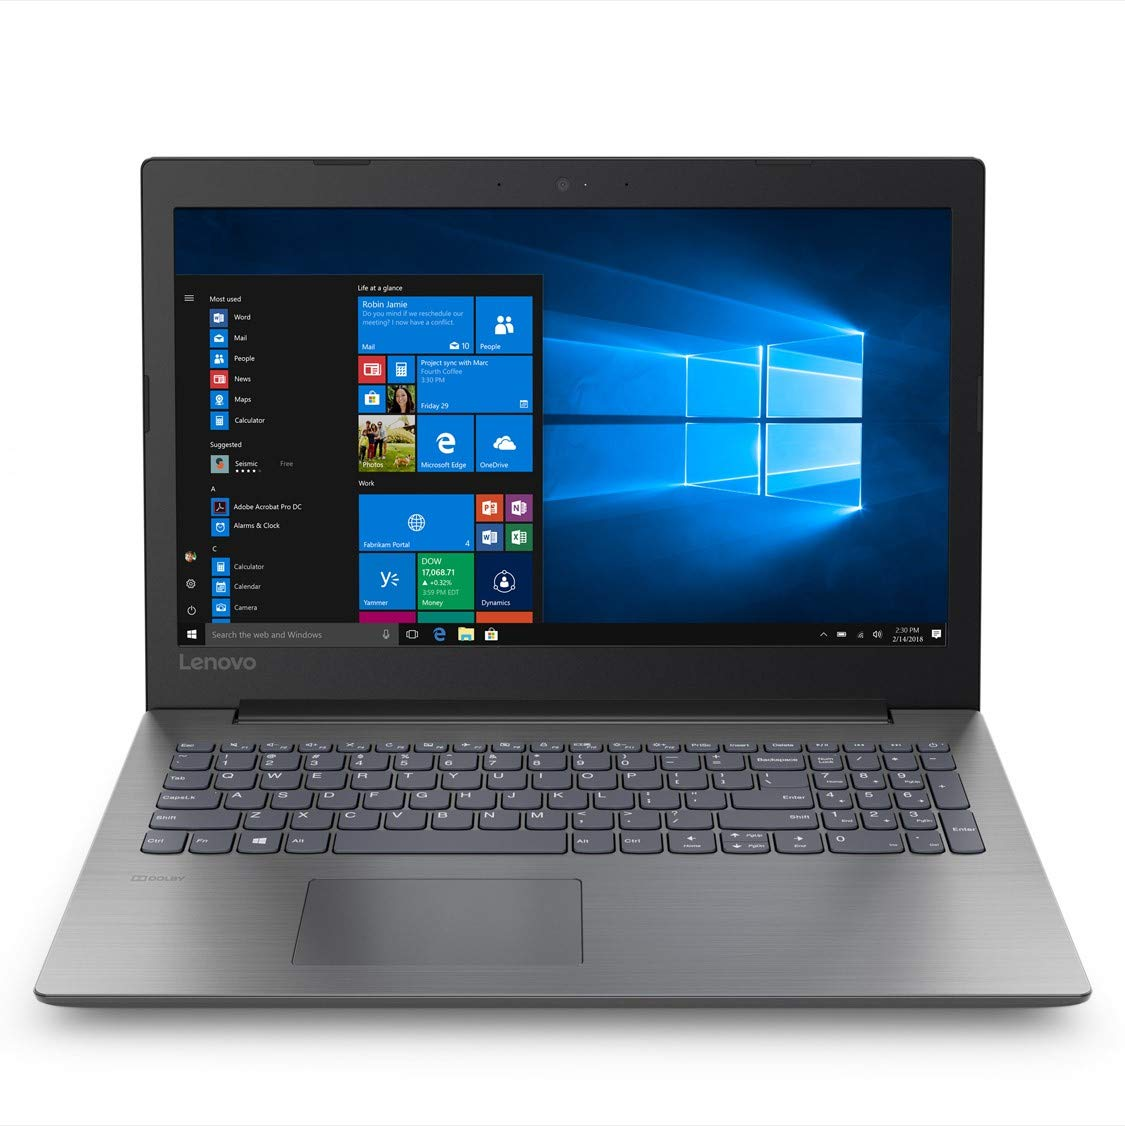 Lenovo Ideapad 330 Intel Core i3 7th Gen 15.6-inch FHD Laptop (4GB/1TB HDD/Windows 10 Home/Onyx Black/ 2.2kg), 81DE01K2IN